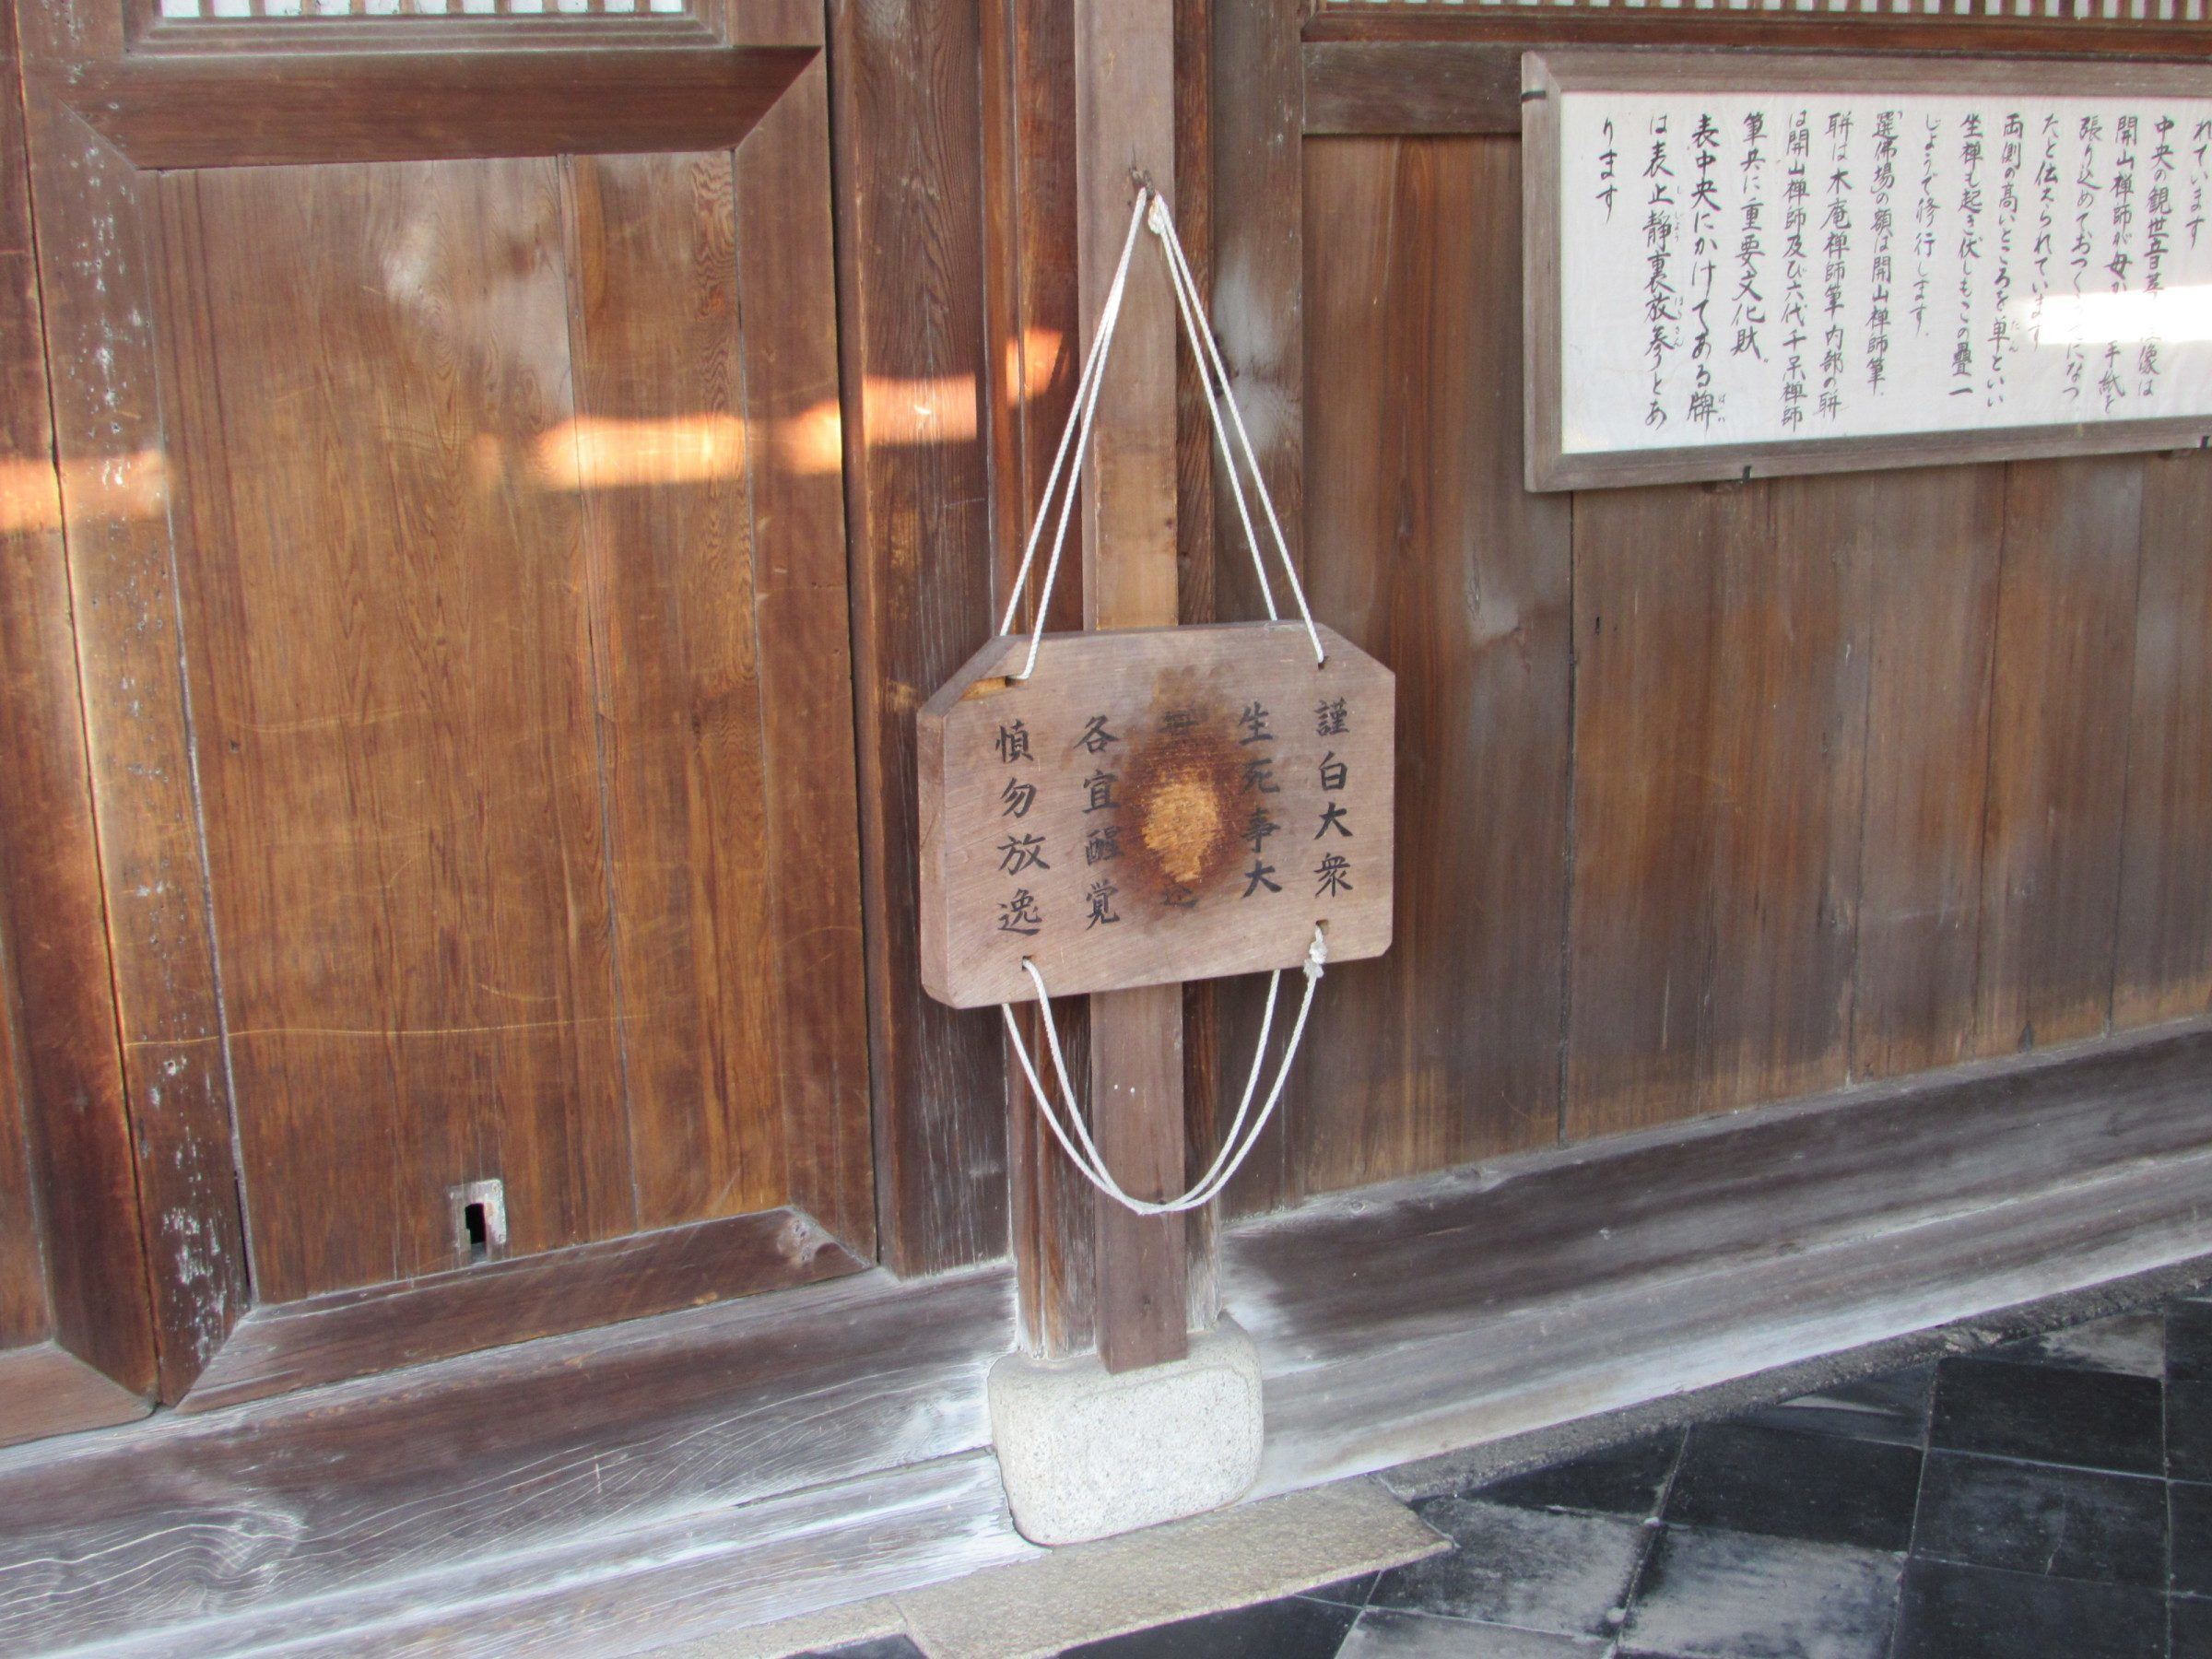 One final temple instrument to look out for is the 'Han', a solid wooden block struck with a mallet, which produces a hard 'clack' sound. The main use of this instrument is to announce that 'Zazen' seated meditation will begin shortly. Inscribed on the Han is a reminder of the importance of the monastic life: 'Birth and Death is a great matter. Life is fleeting. Wake up to this fact! And do not allow yourself to waste time!' A great motto for everyone, Buddhist or not!